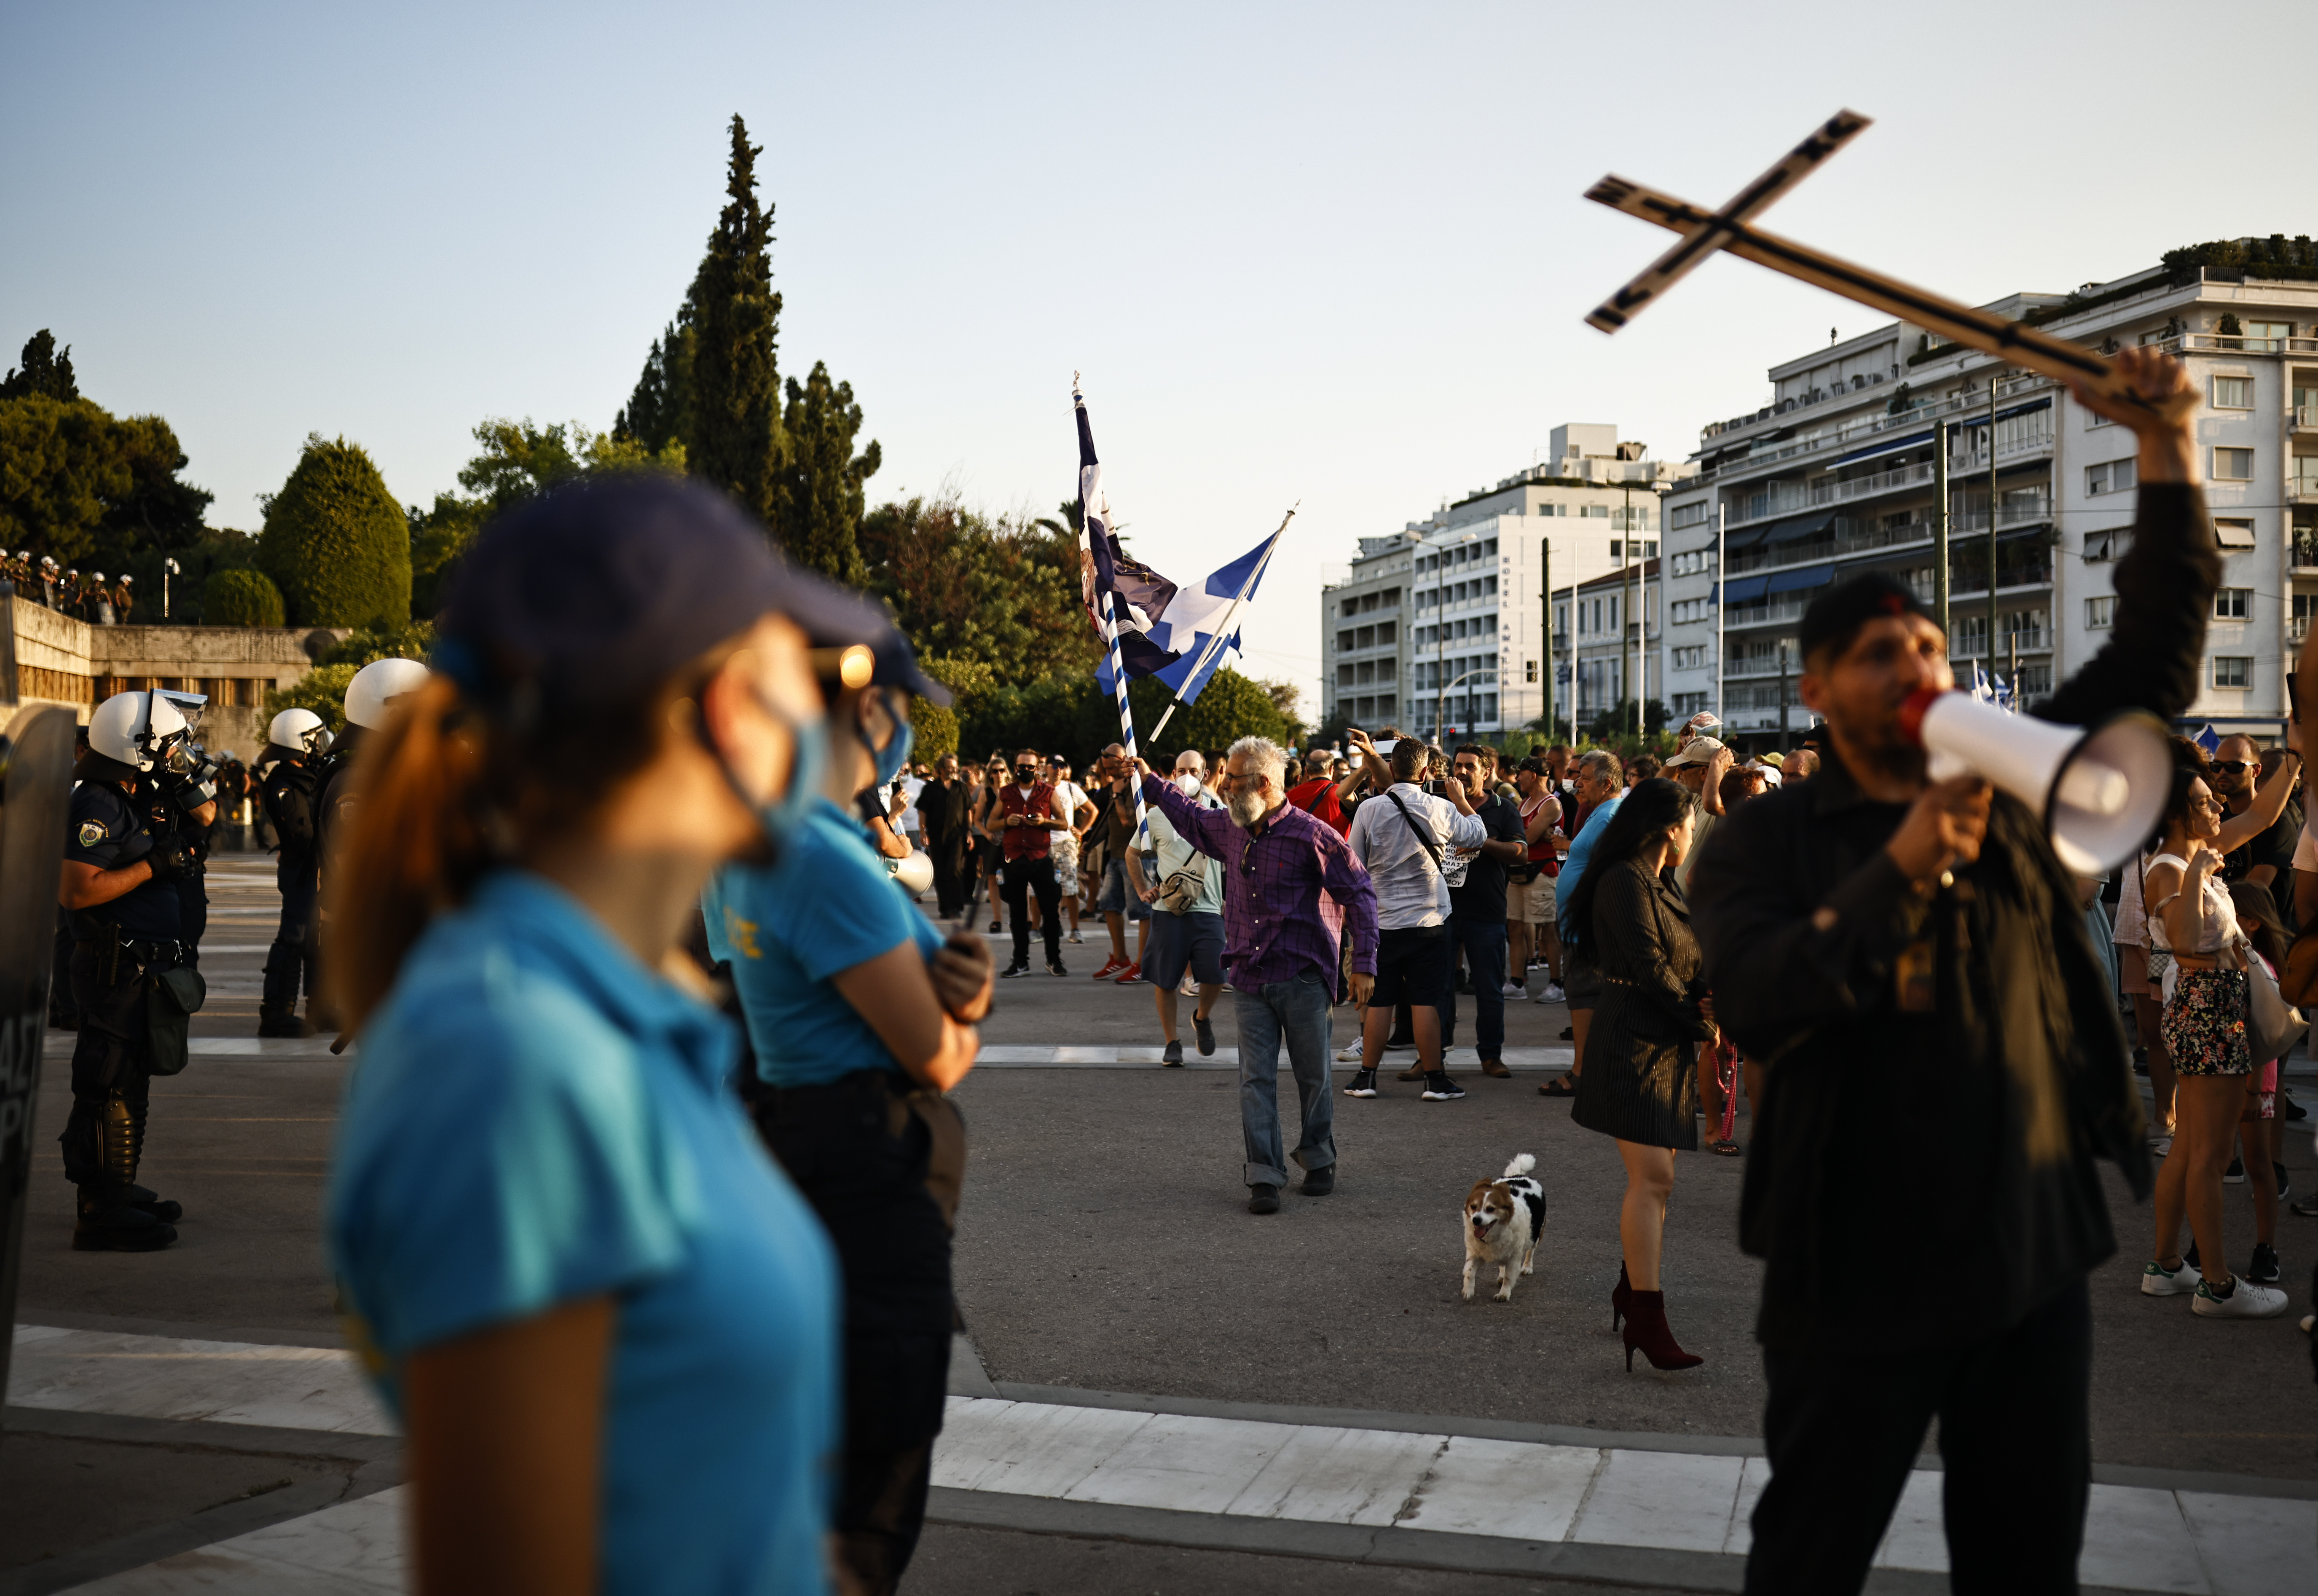 Anti-vaccine protesters take part in a demonstration outside the parliament building after the government announced mandatory vaccinations for certain sectors, in Athens, Greece, July 14, 2021. REUTERS/Alkis Konstantinidis